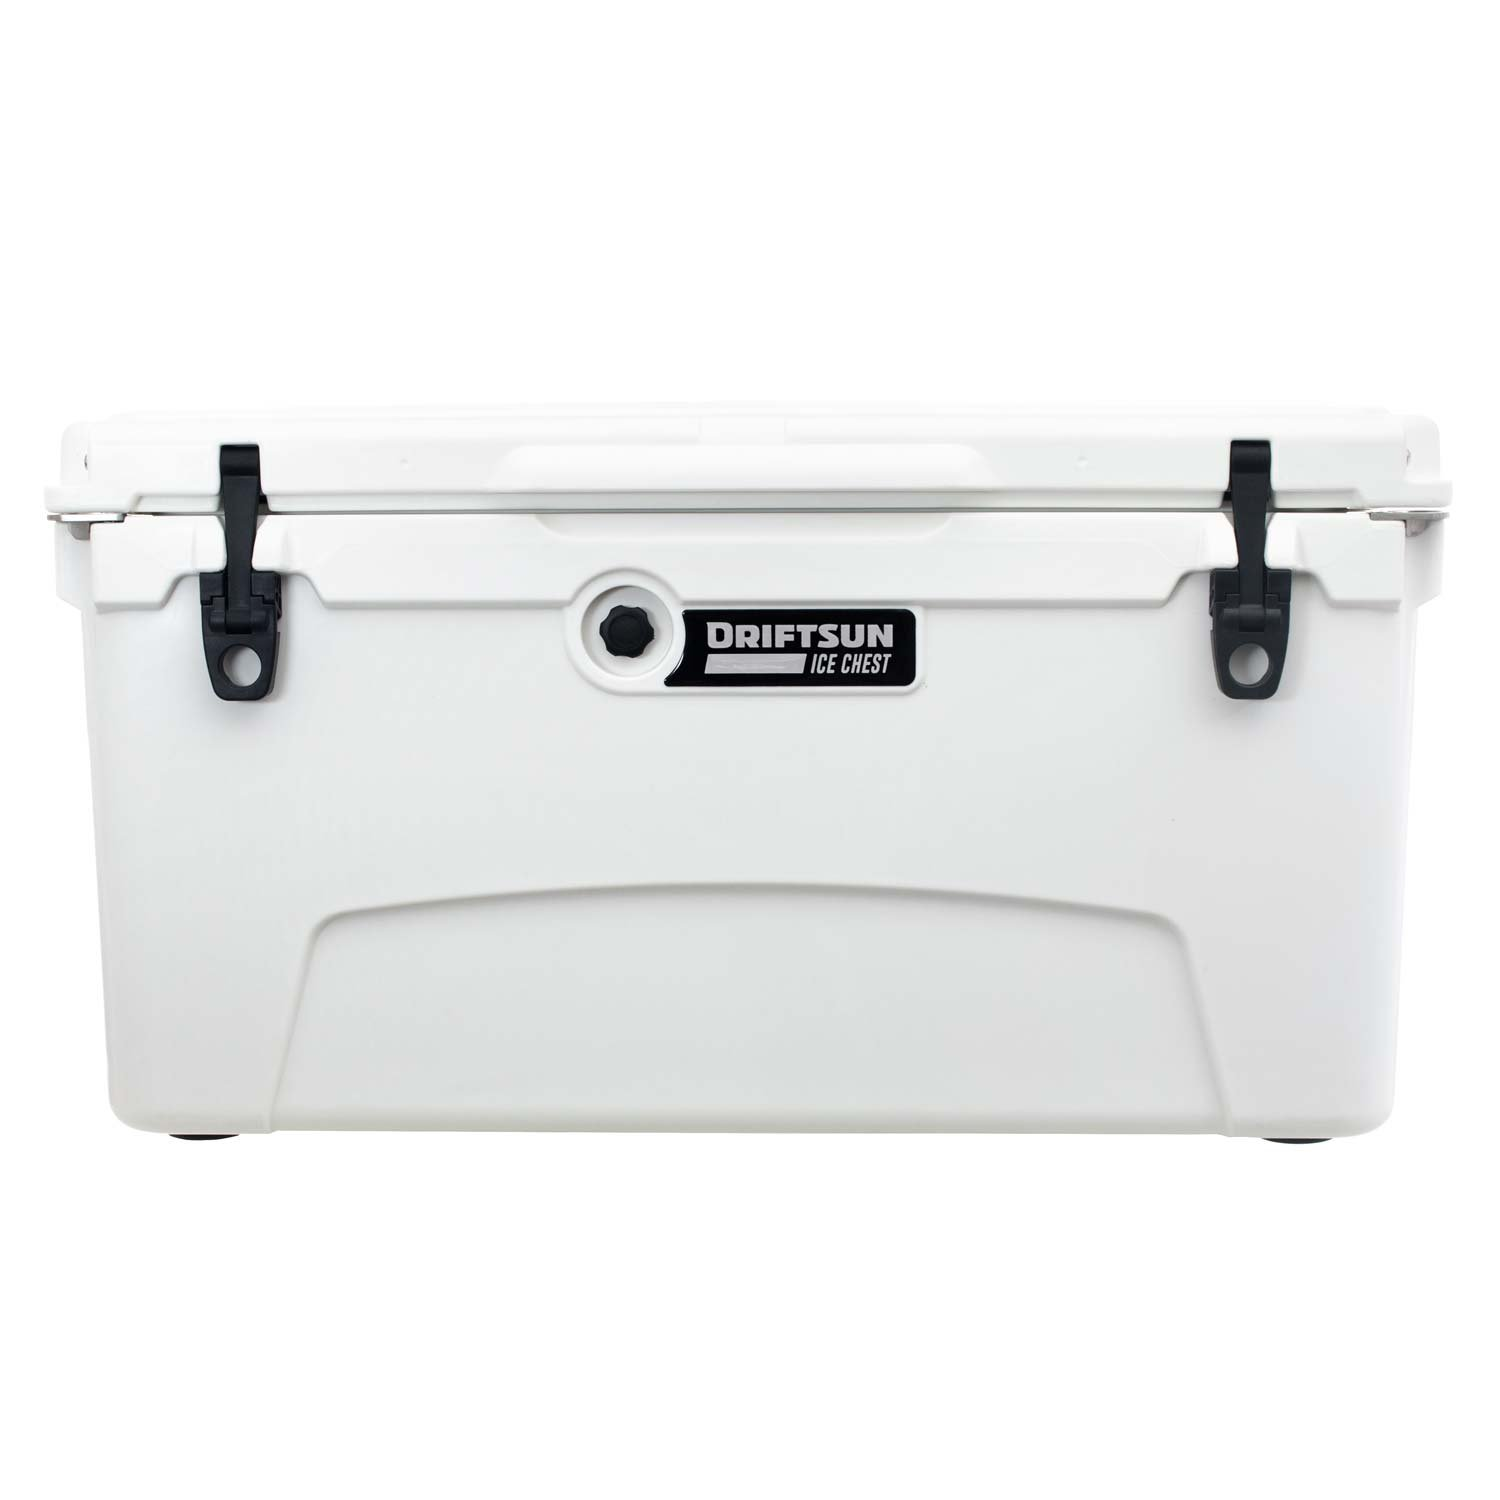 Driftsun 75 Quart Ice Chest, Heavy Duty, High Performance Roto-Molded Commercial Grade Insulated Cooler, White by Driftsun